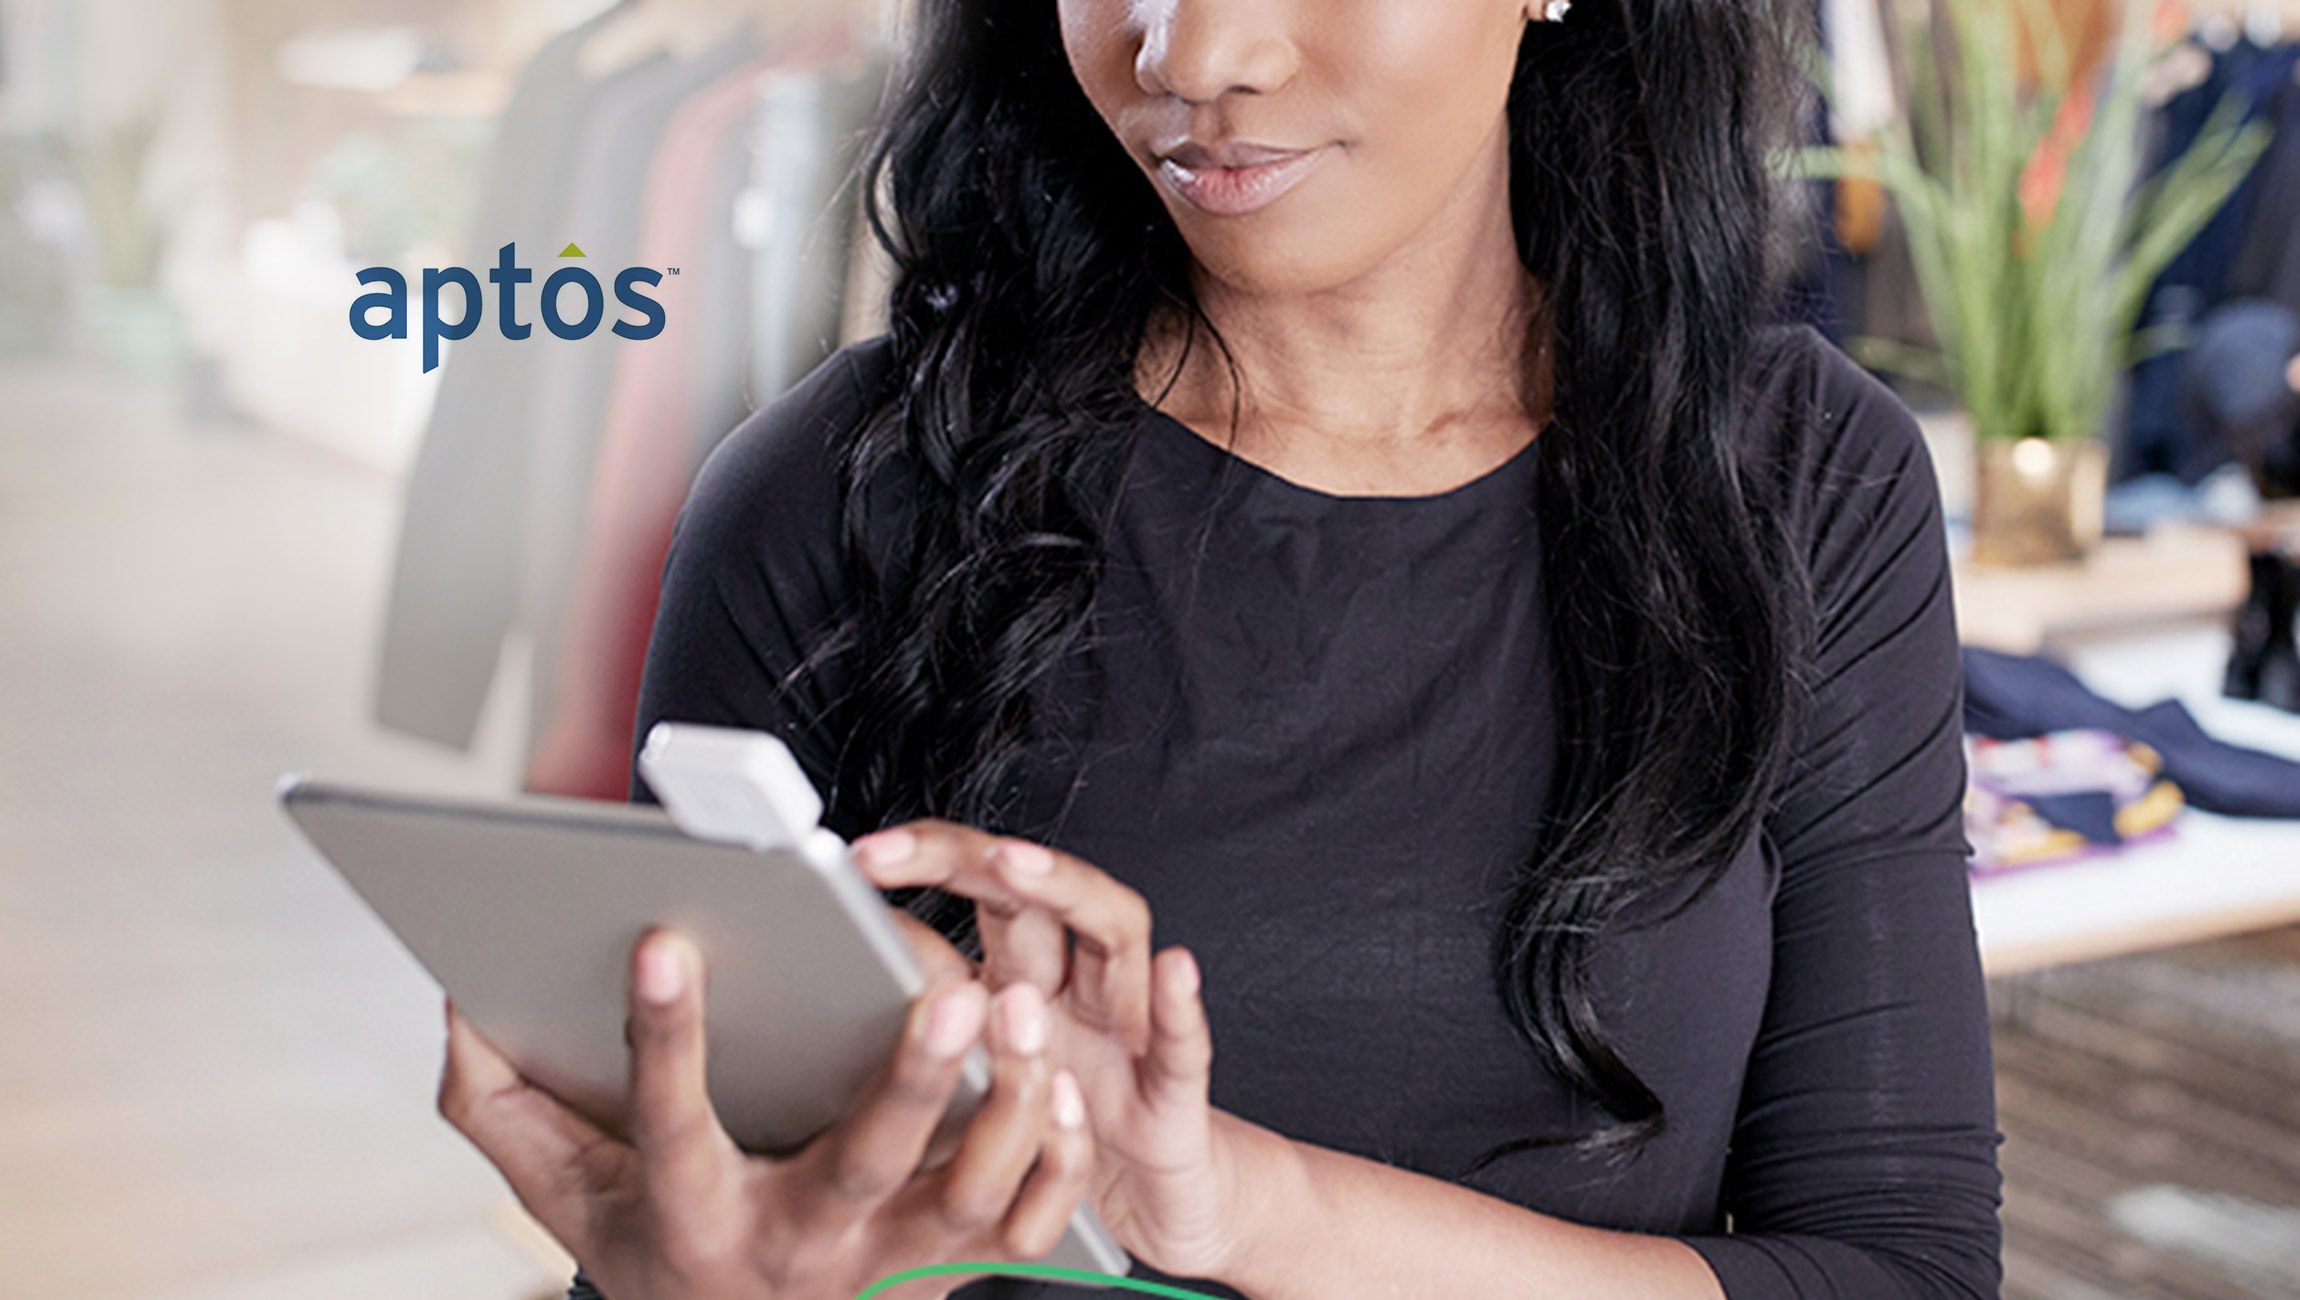 The Vitamin Shoppe Takes Omnichannel Customer Experience to New Heights with Aptos Retail Technology